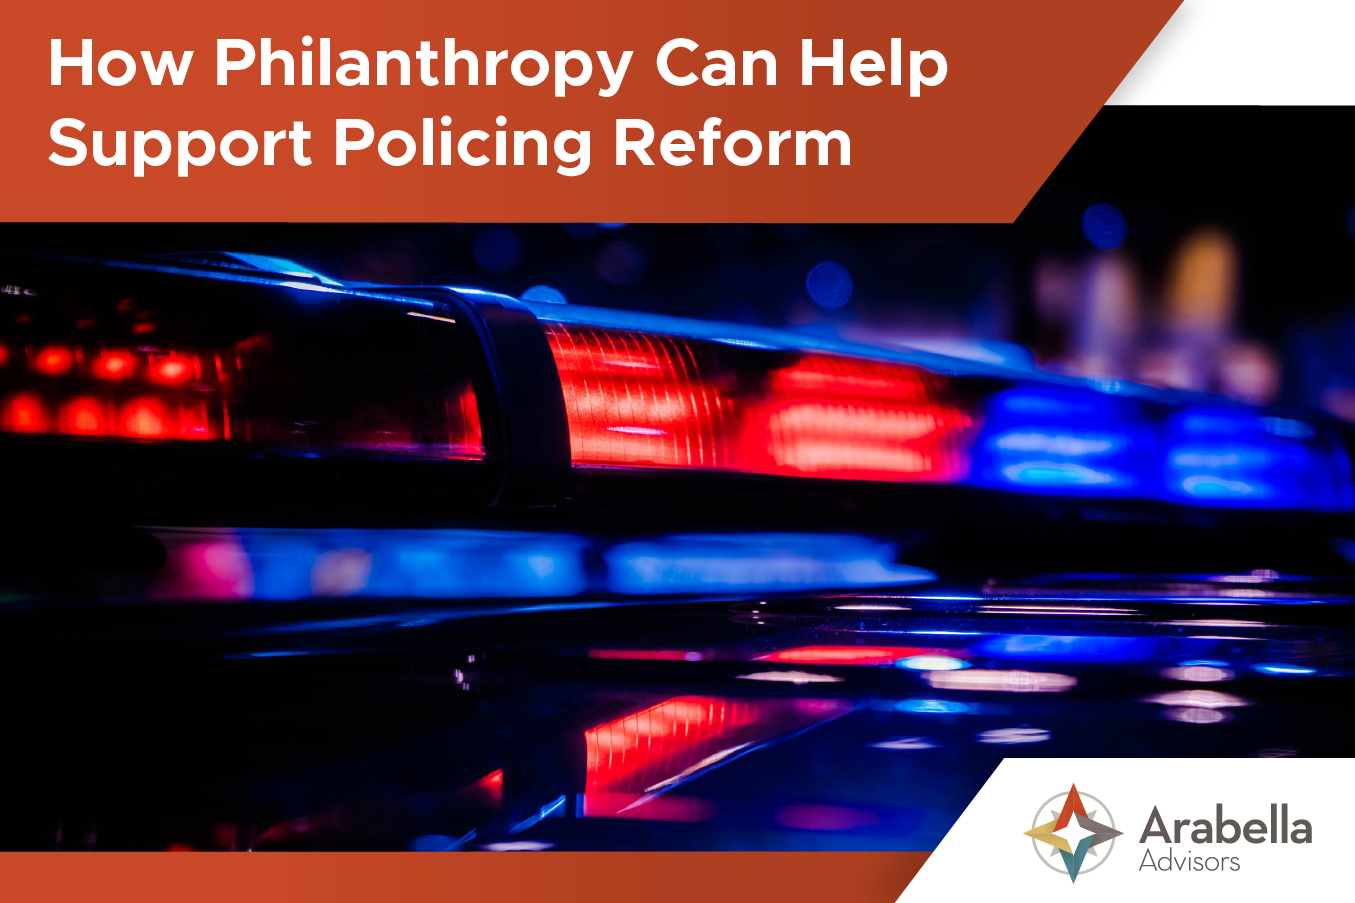 5 Insights on How Philanthropy Can Help Support Policing Reform